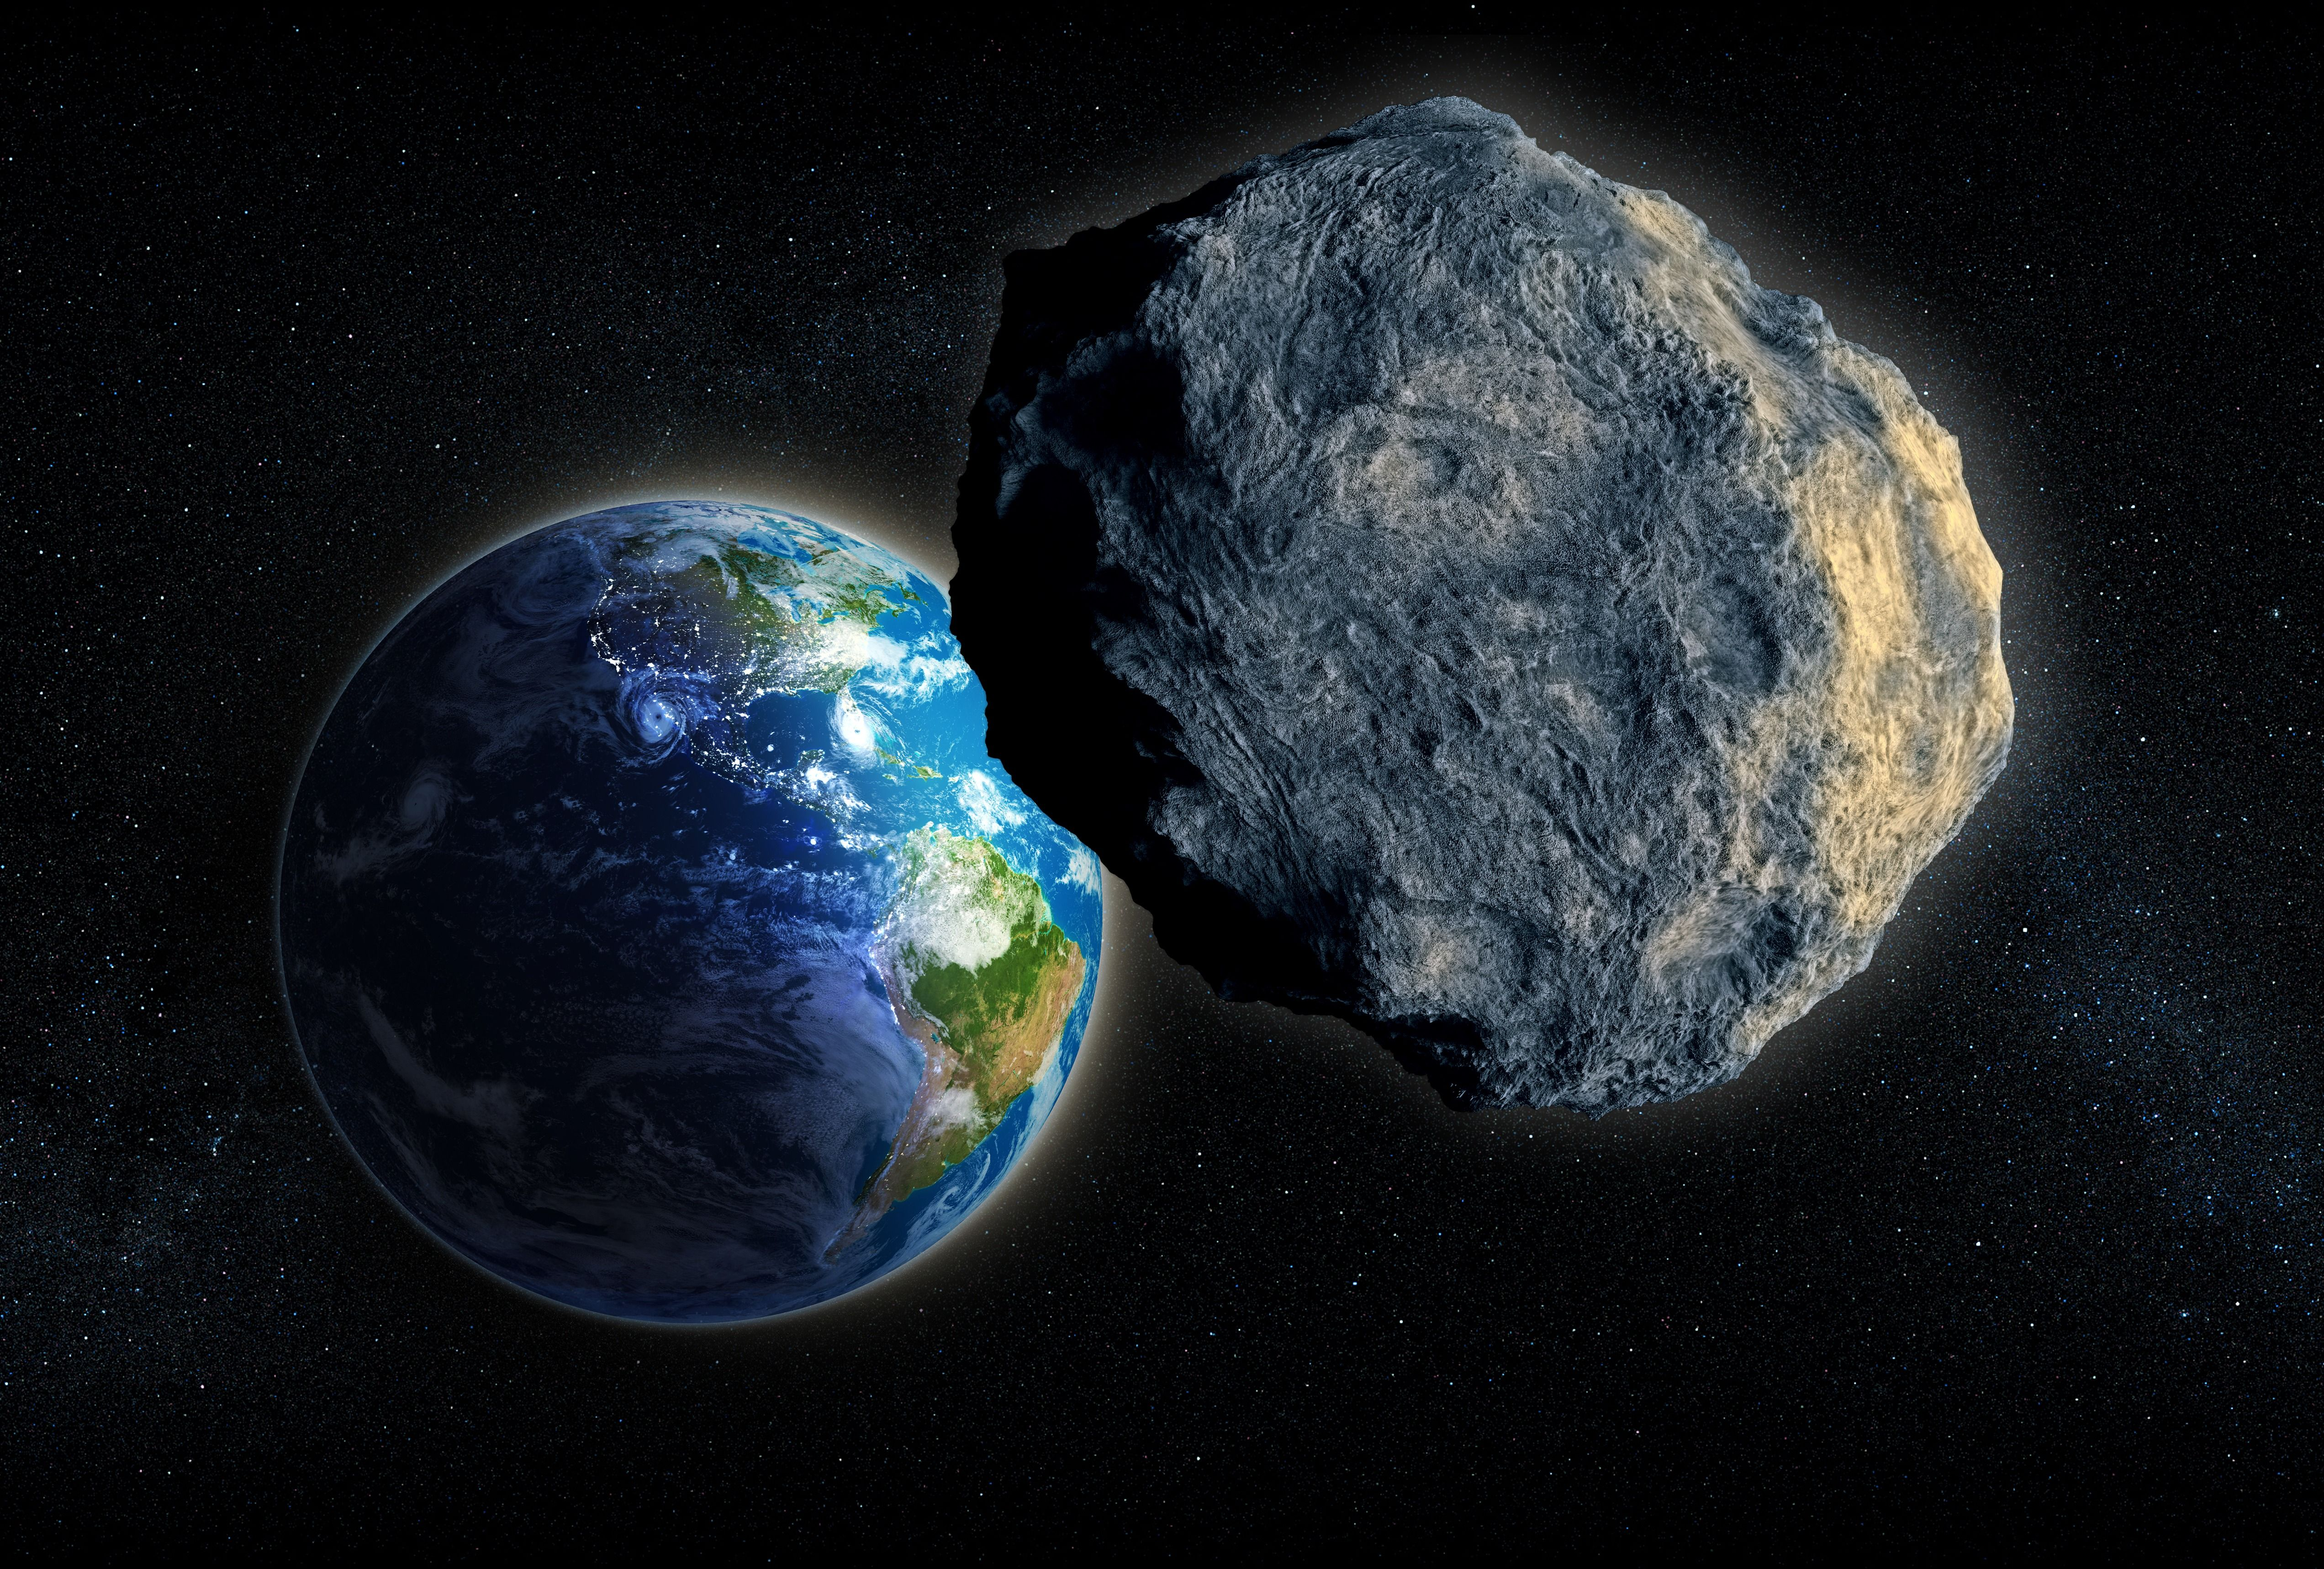 15-meter asteroid missed the Earth 43